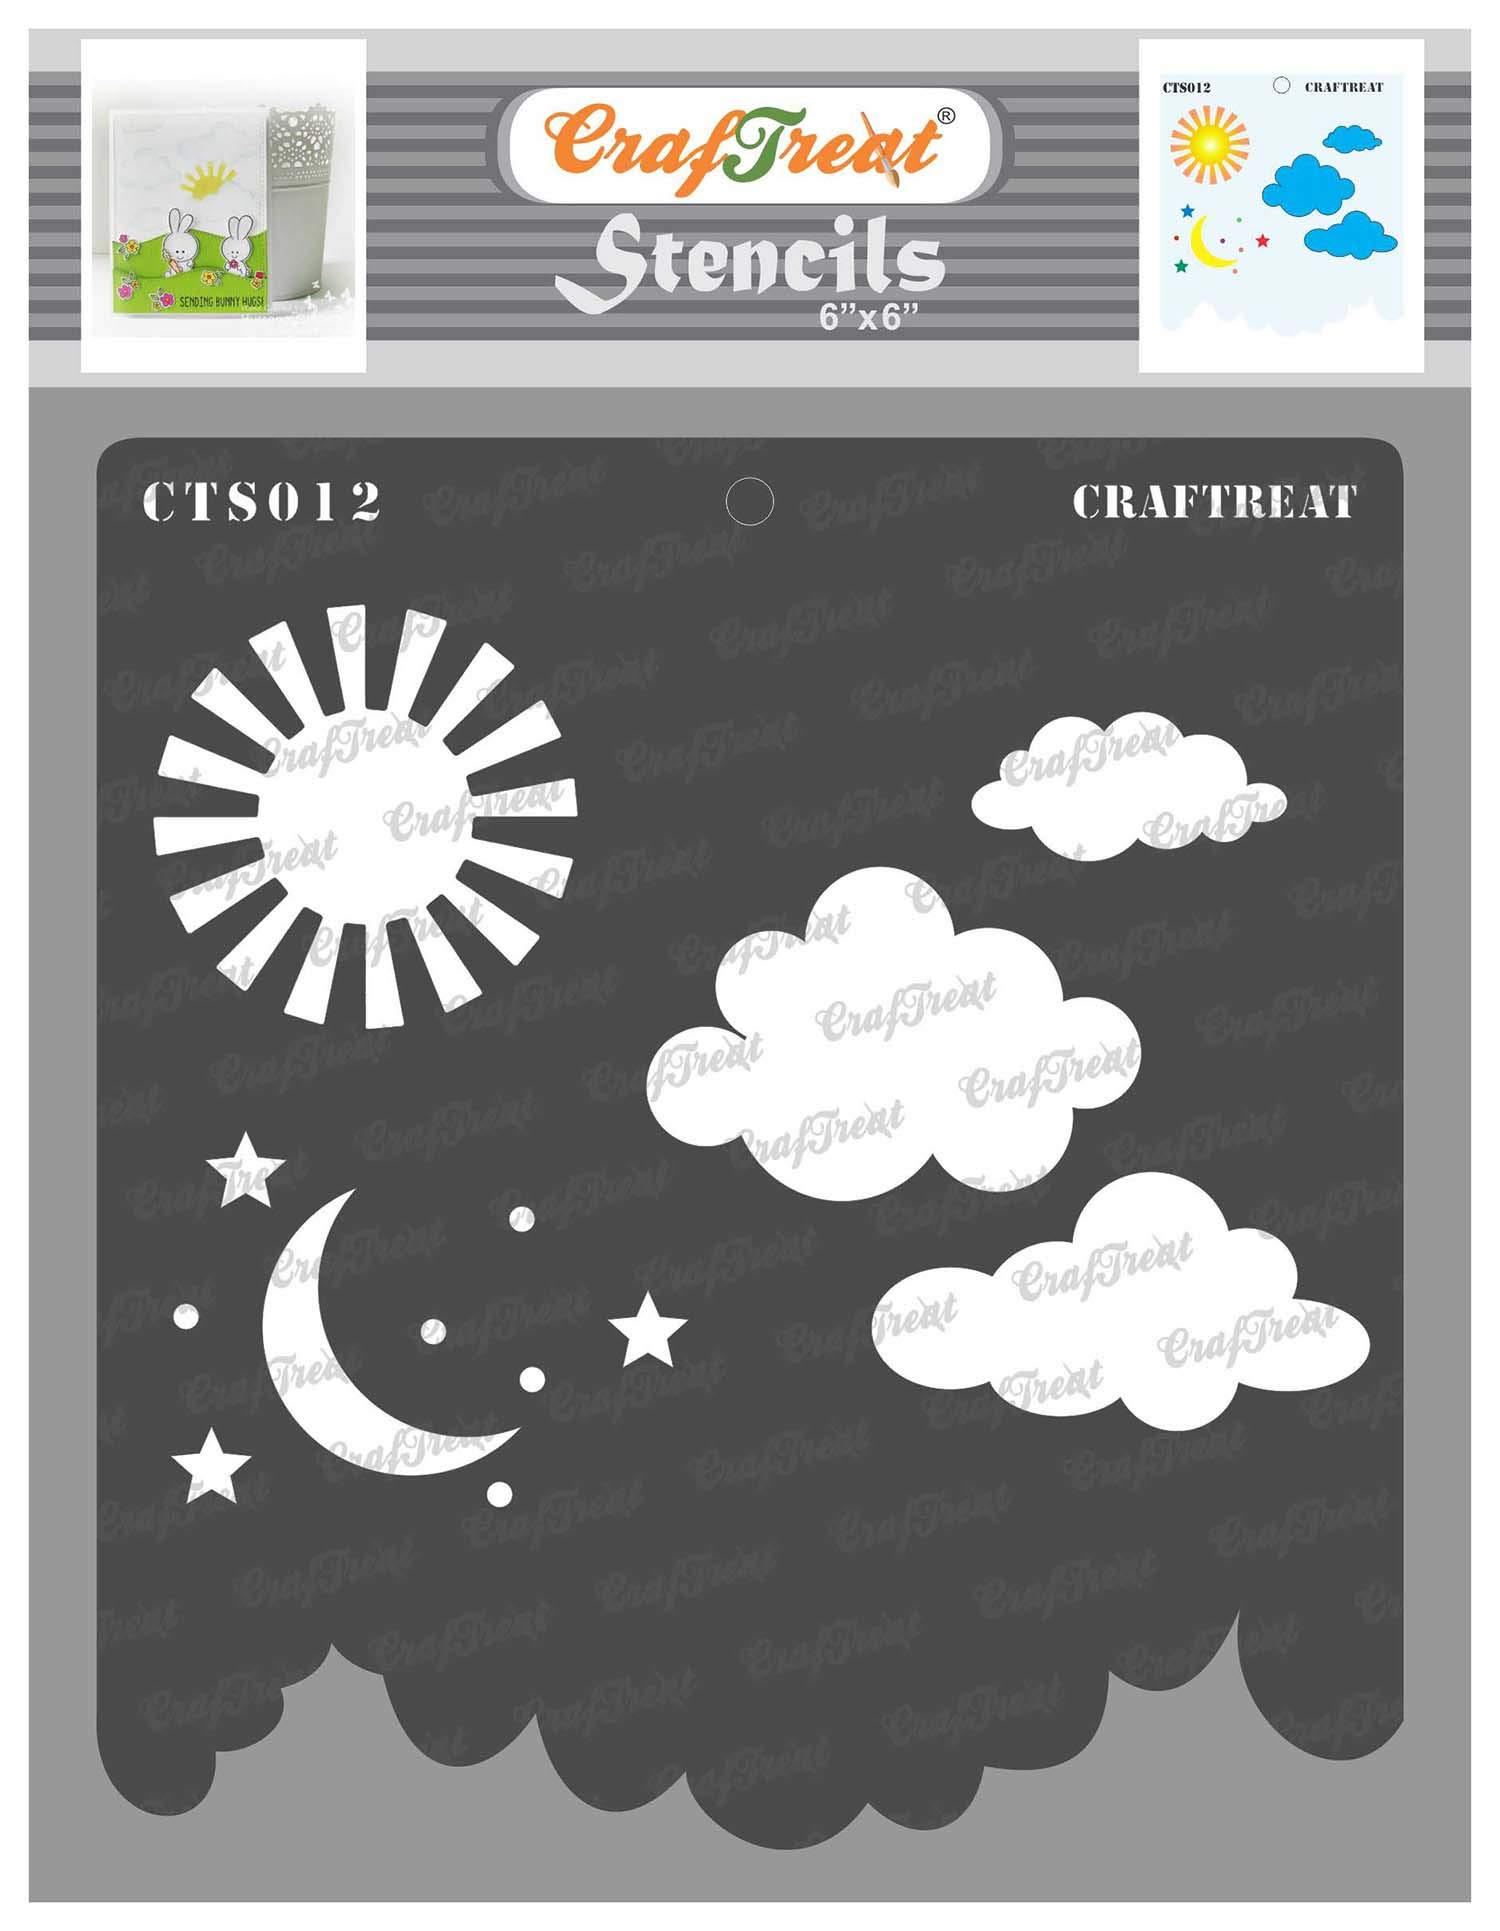 CrafTreat Star Stencils for Painting on Wood, Canvas, Paper, Fabric, Floor, Wall and Tile - Clouds and Stars - 6x6 Inches Each - Reusable DIY Art and Craft Stencils - Sun Moon and Stars Stencil